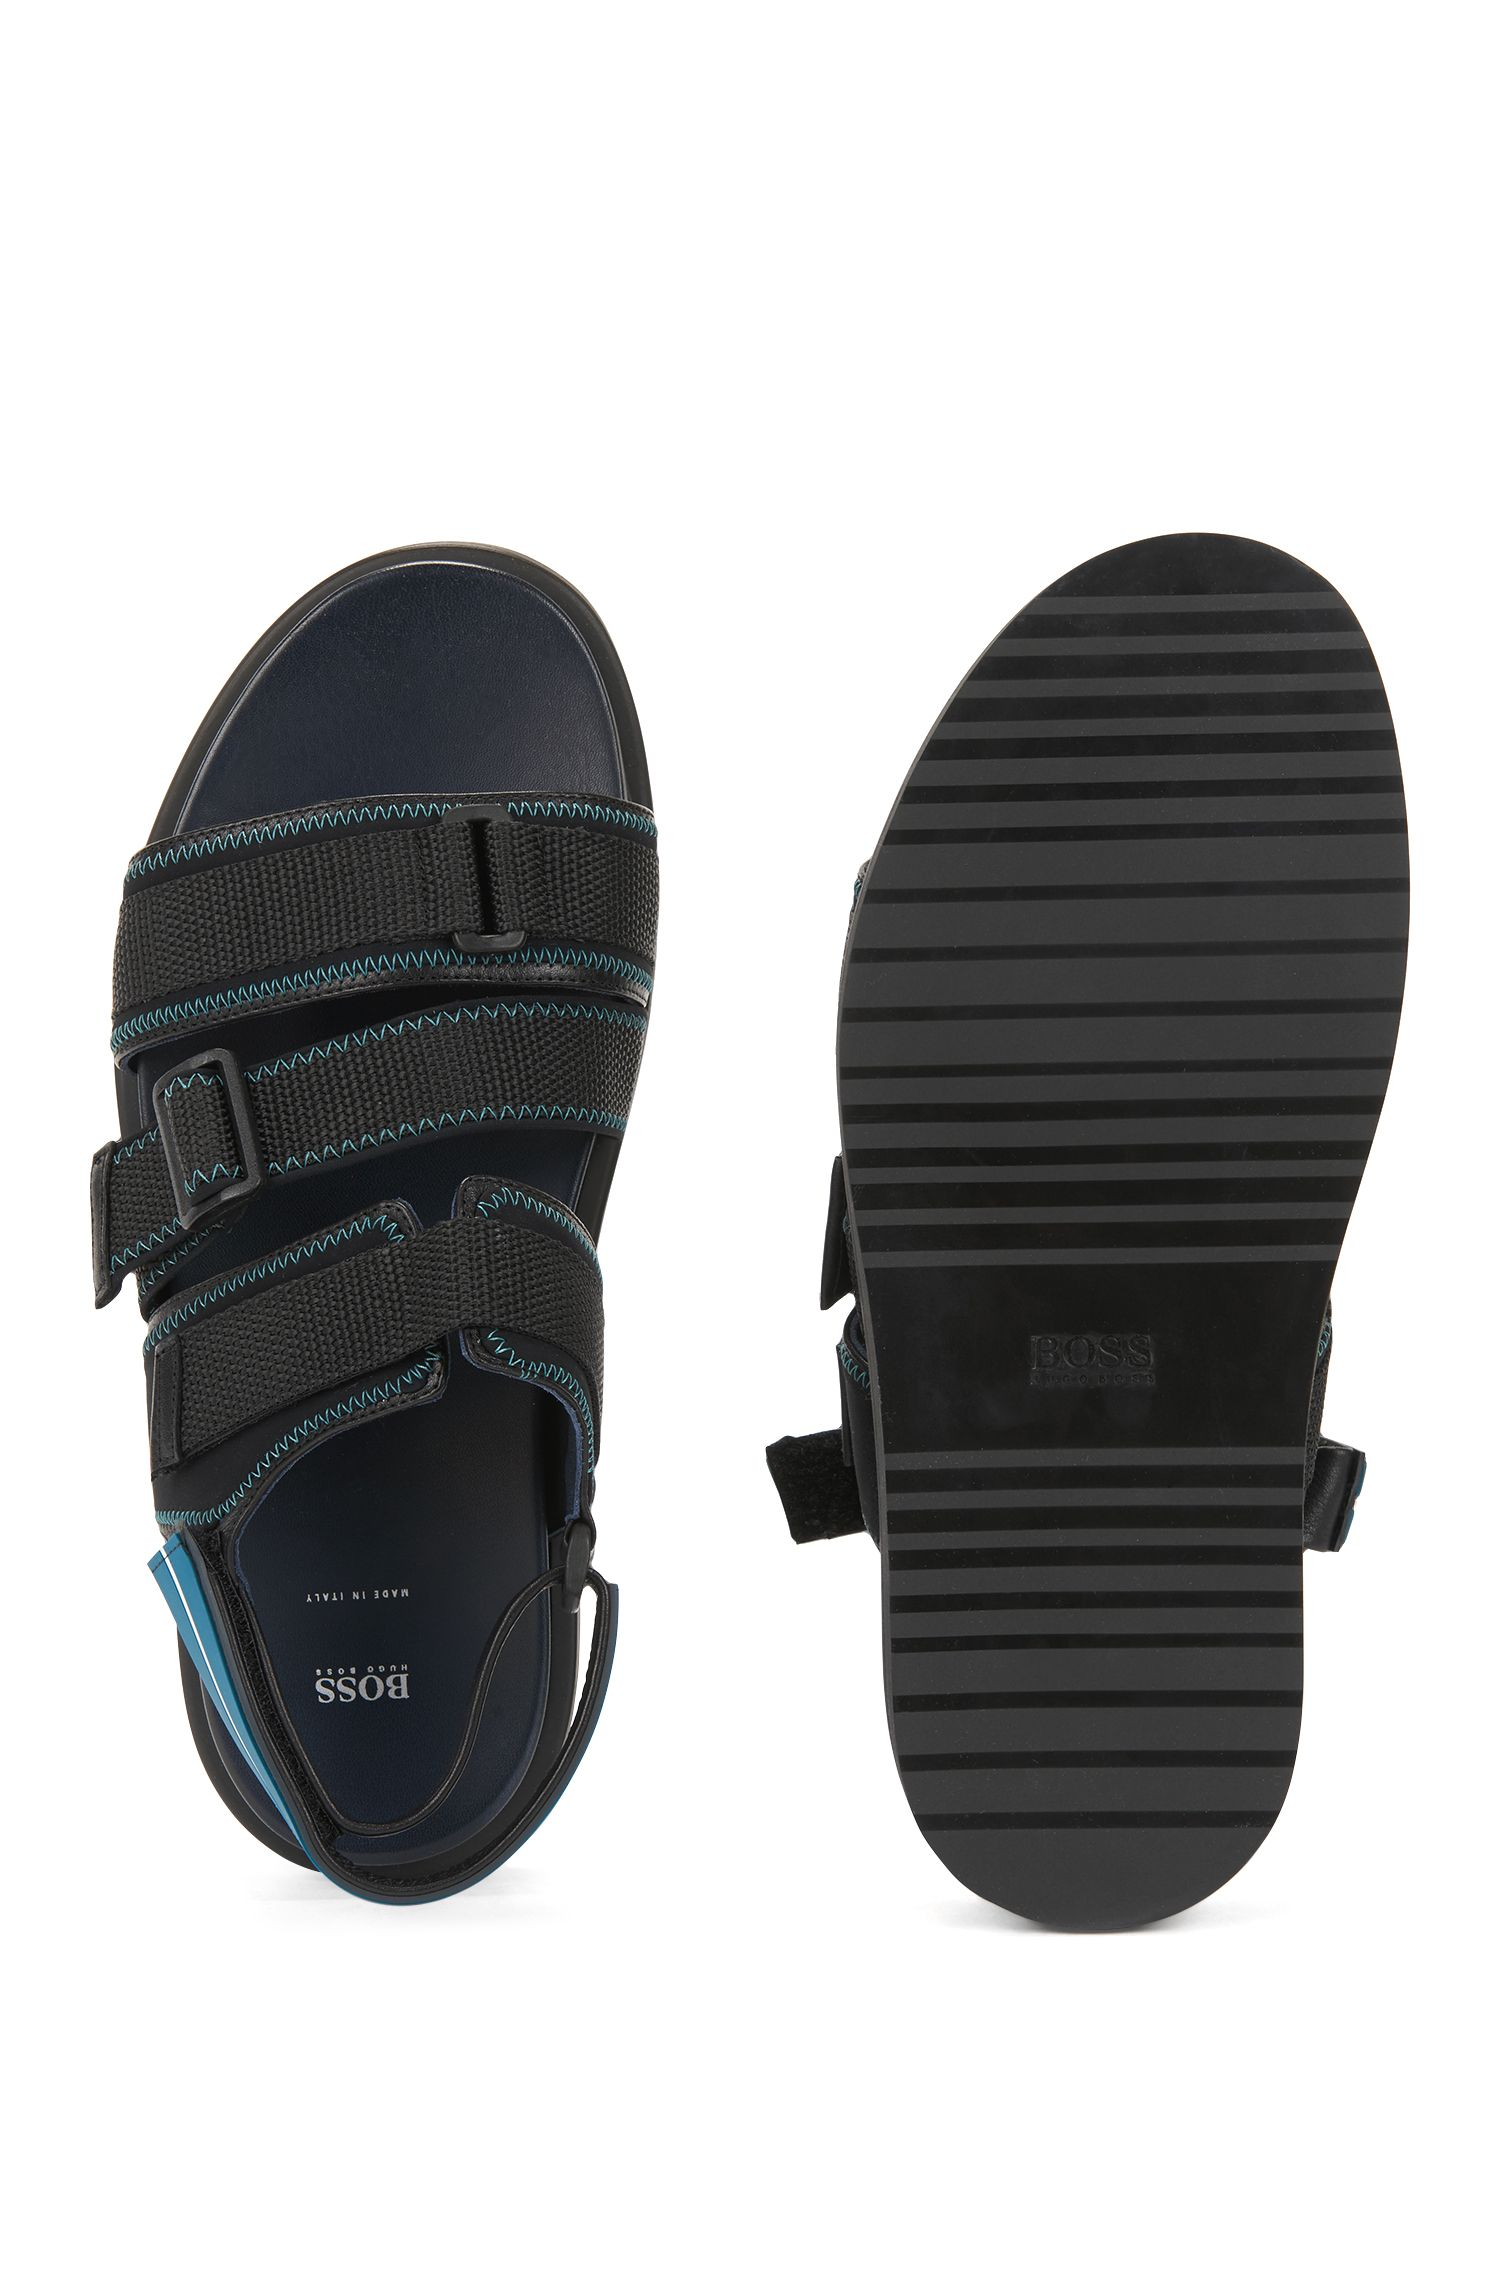 Italian-made calf-leather sandals with webbing detail